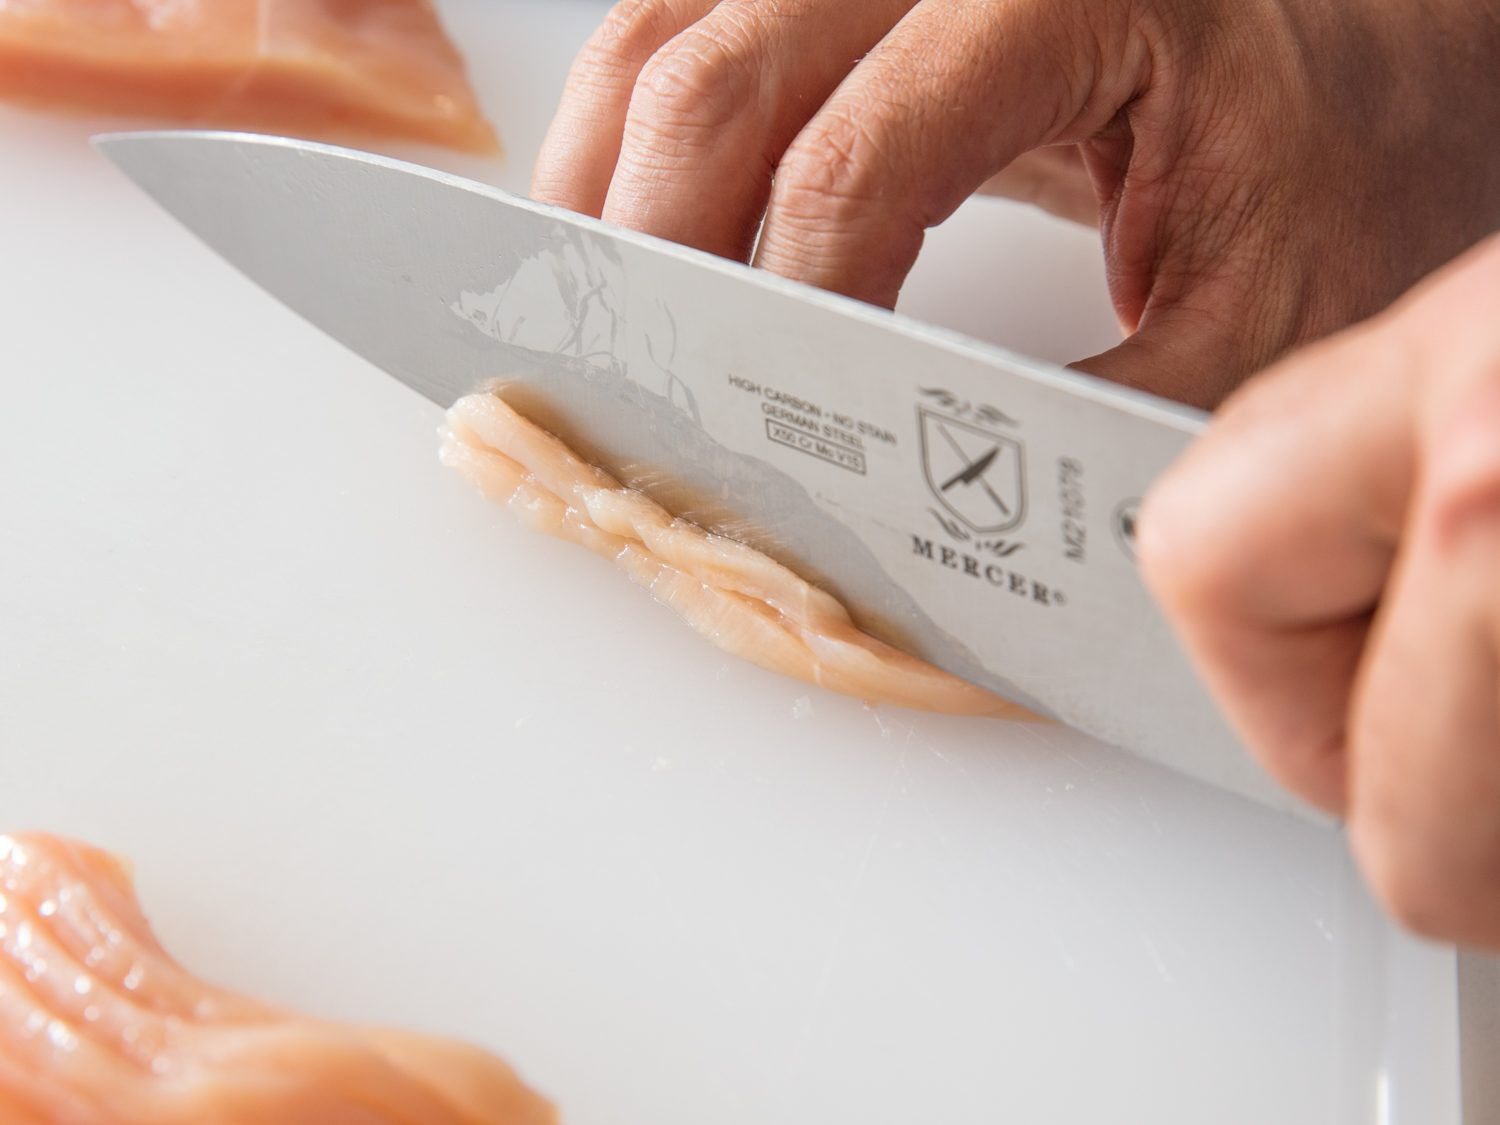 A knife slicing through two slices of chicken breast stacked on top of one another to create julienned strips for stir-frying